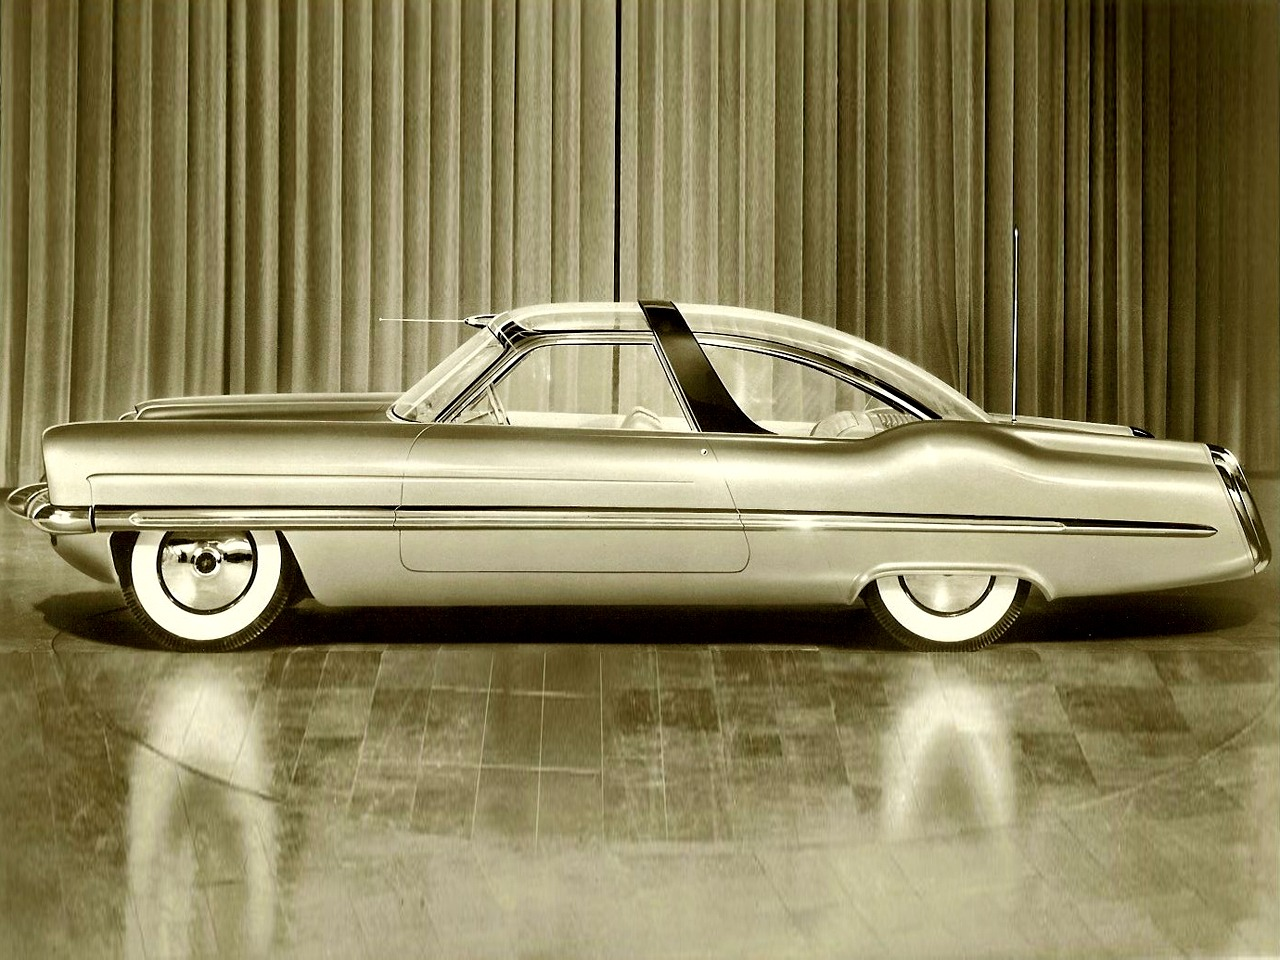 Lincoln XL-500 Concept Car (1953) – Old Concept Cars